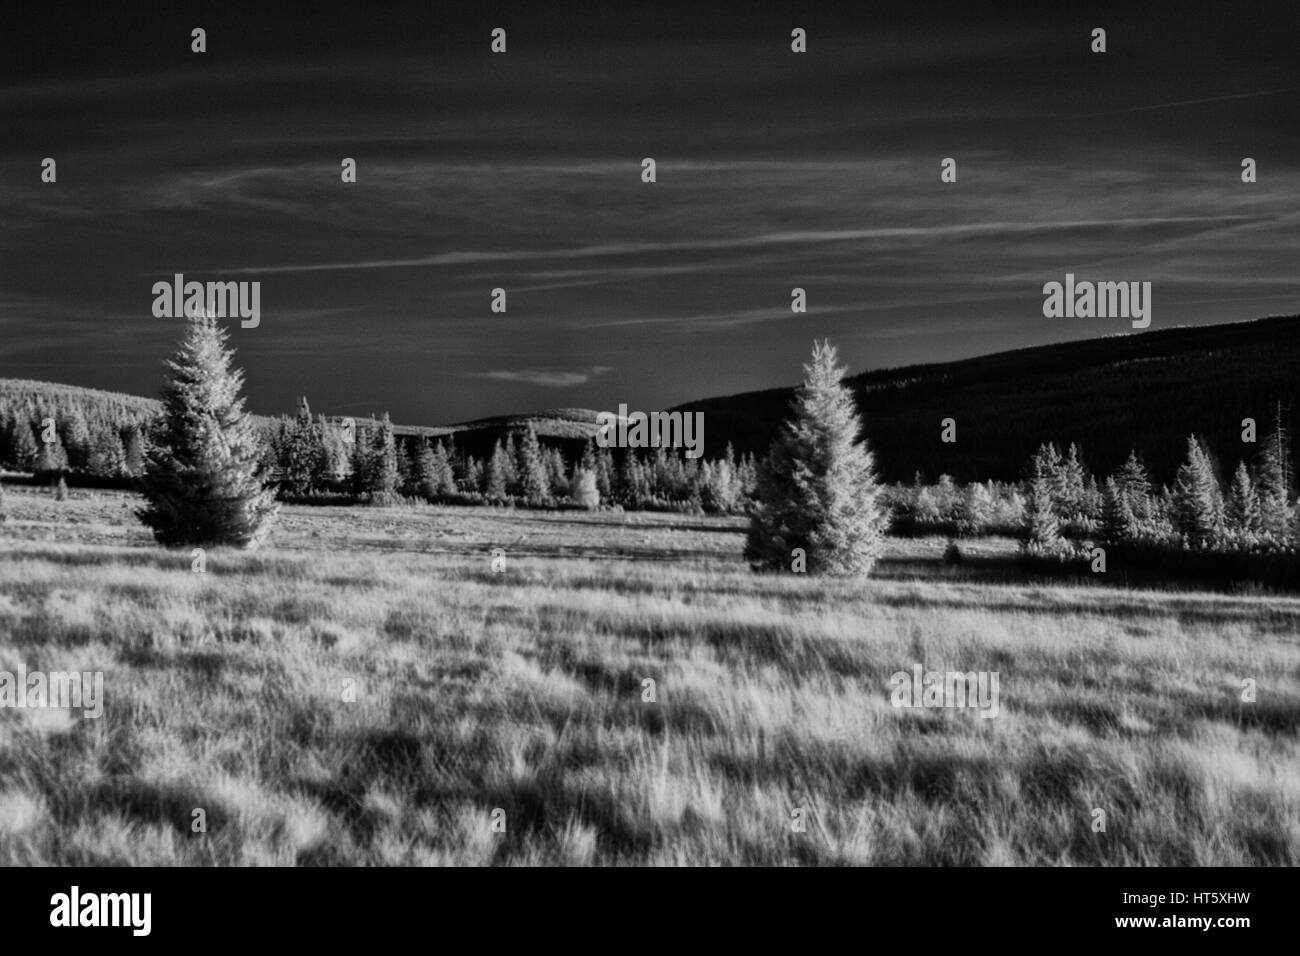 Infrared photography of trees and sky - Stock Image